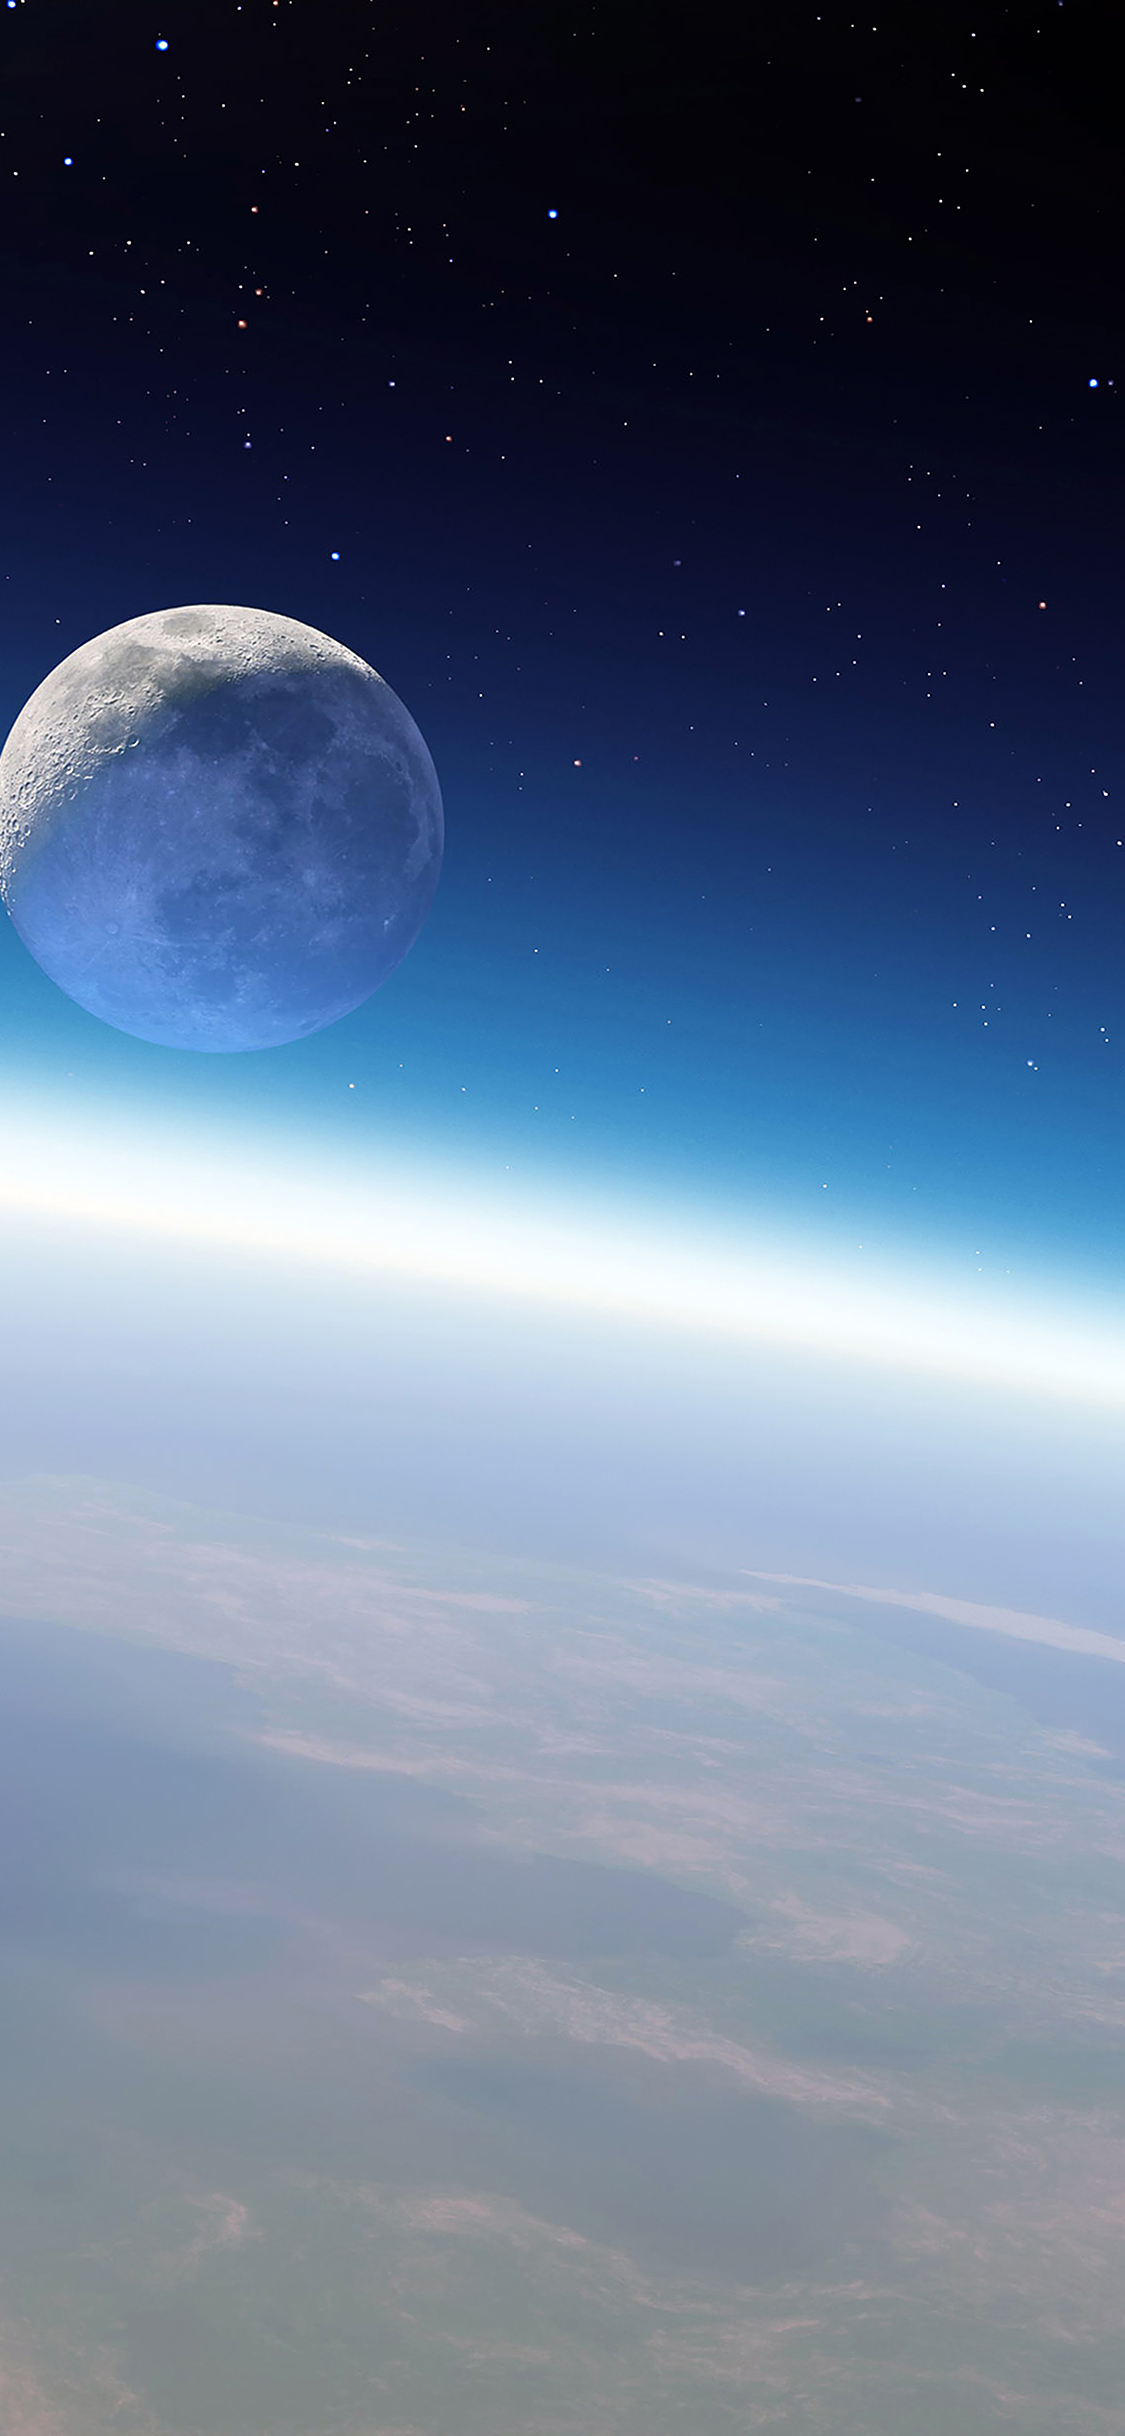 earth moon orbit iphone wallpaper